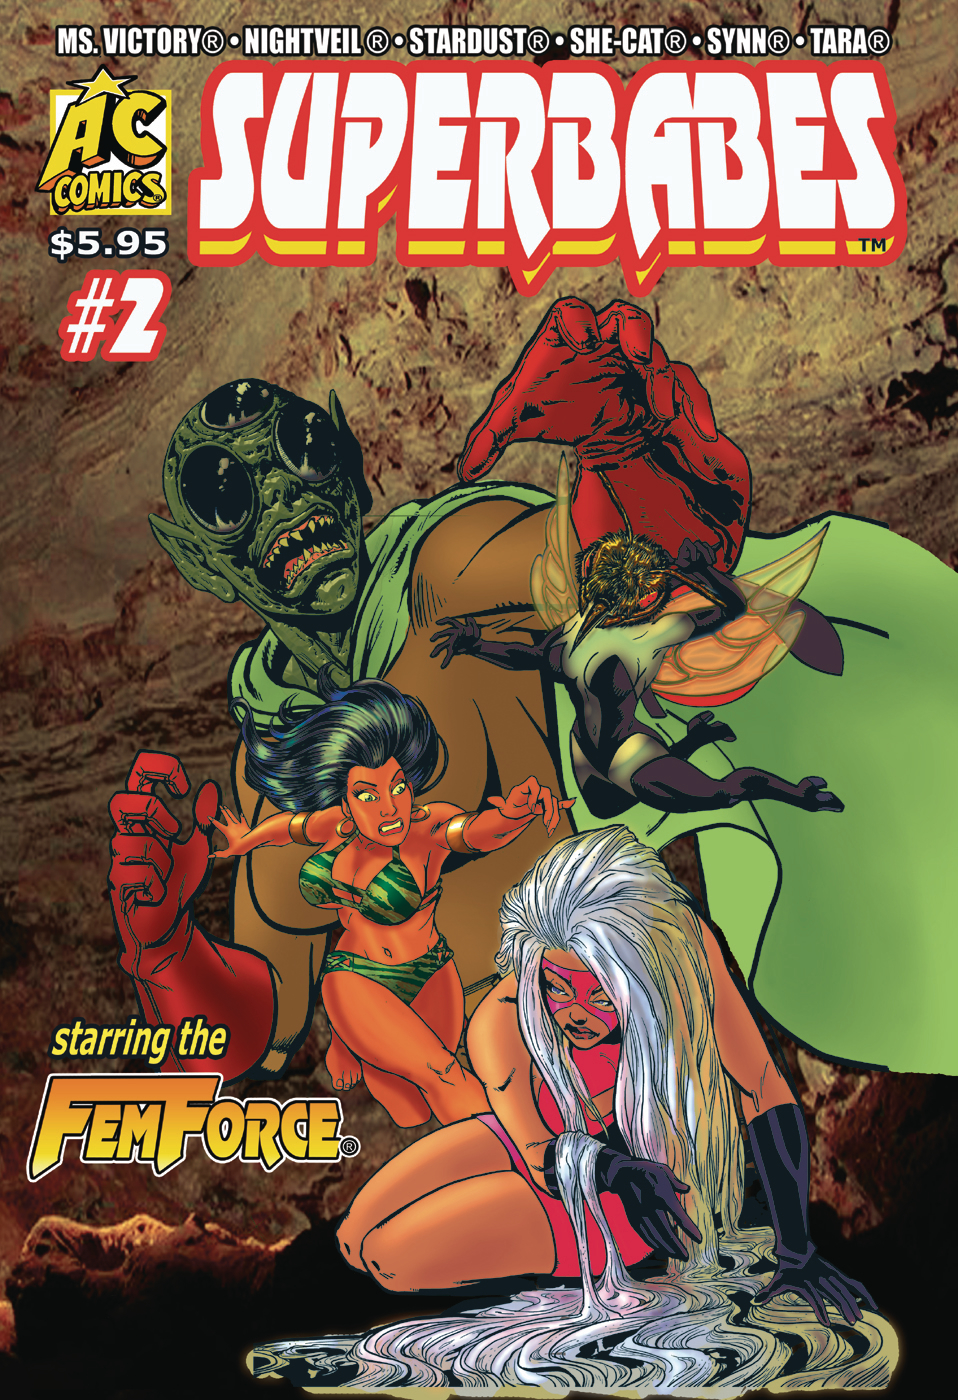 SUPERBABES STARRING FEMFORCE #2